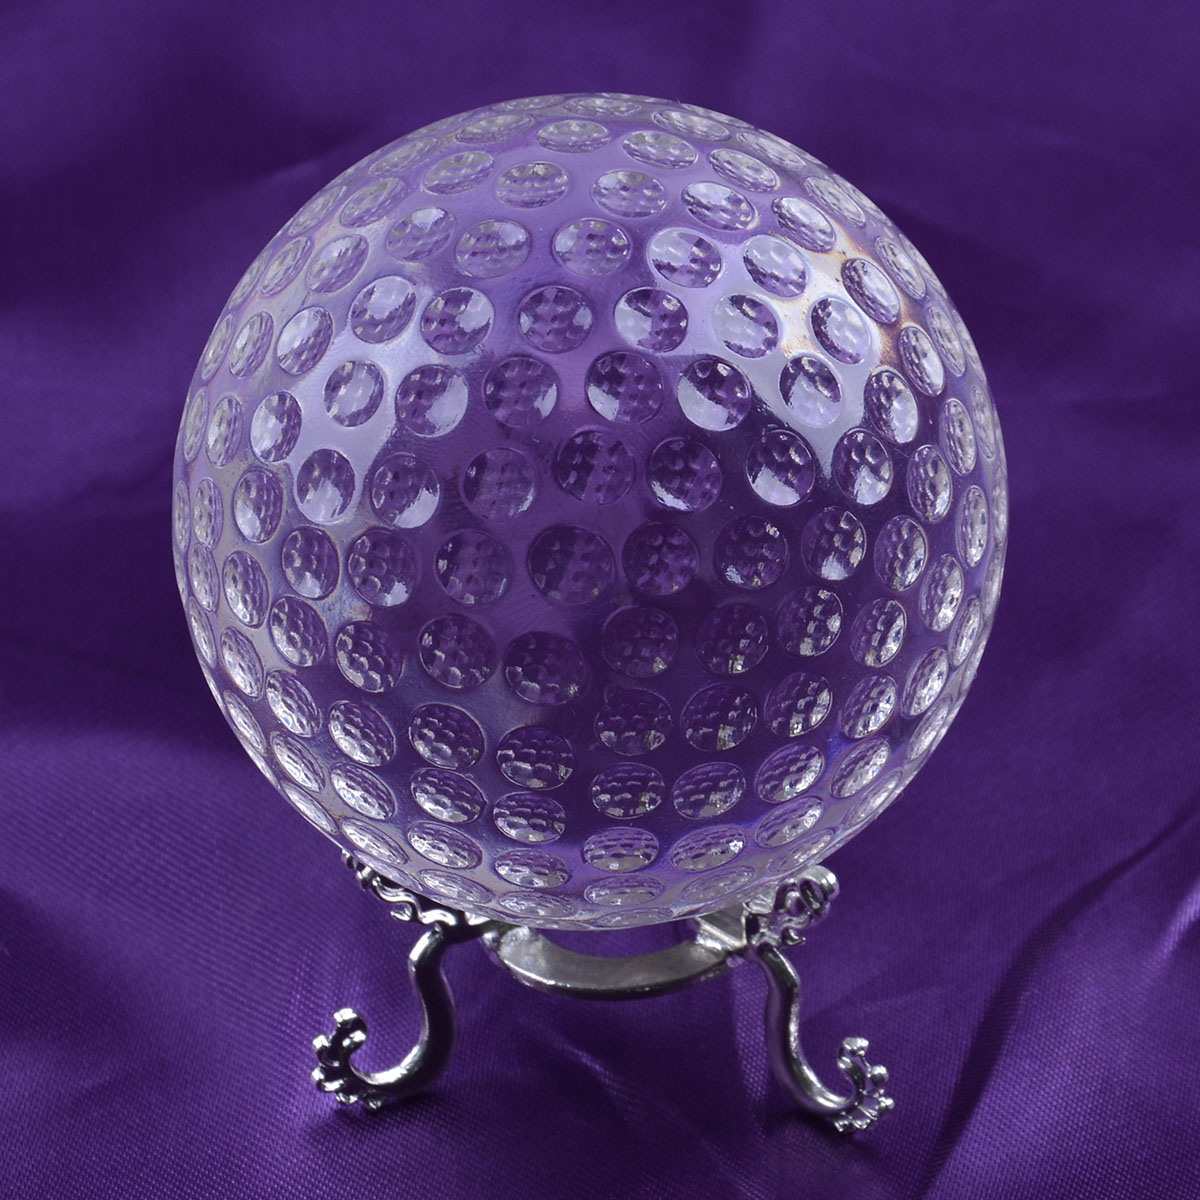 Crystal Golf Ball with Stand for Souvenir Gift